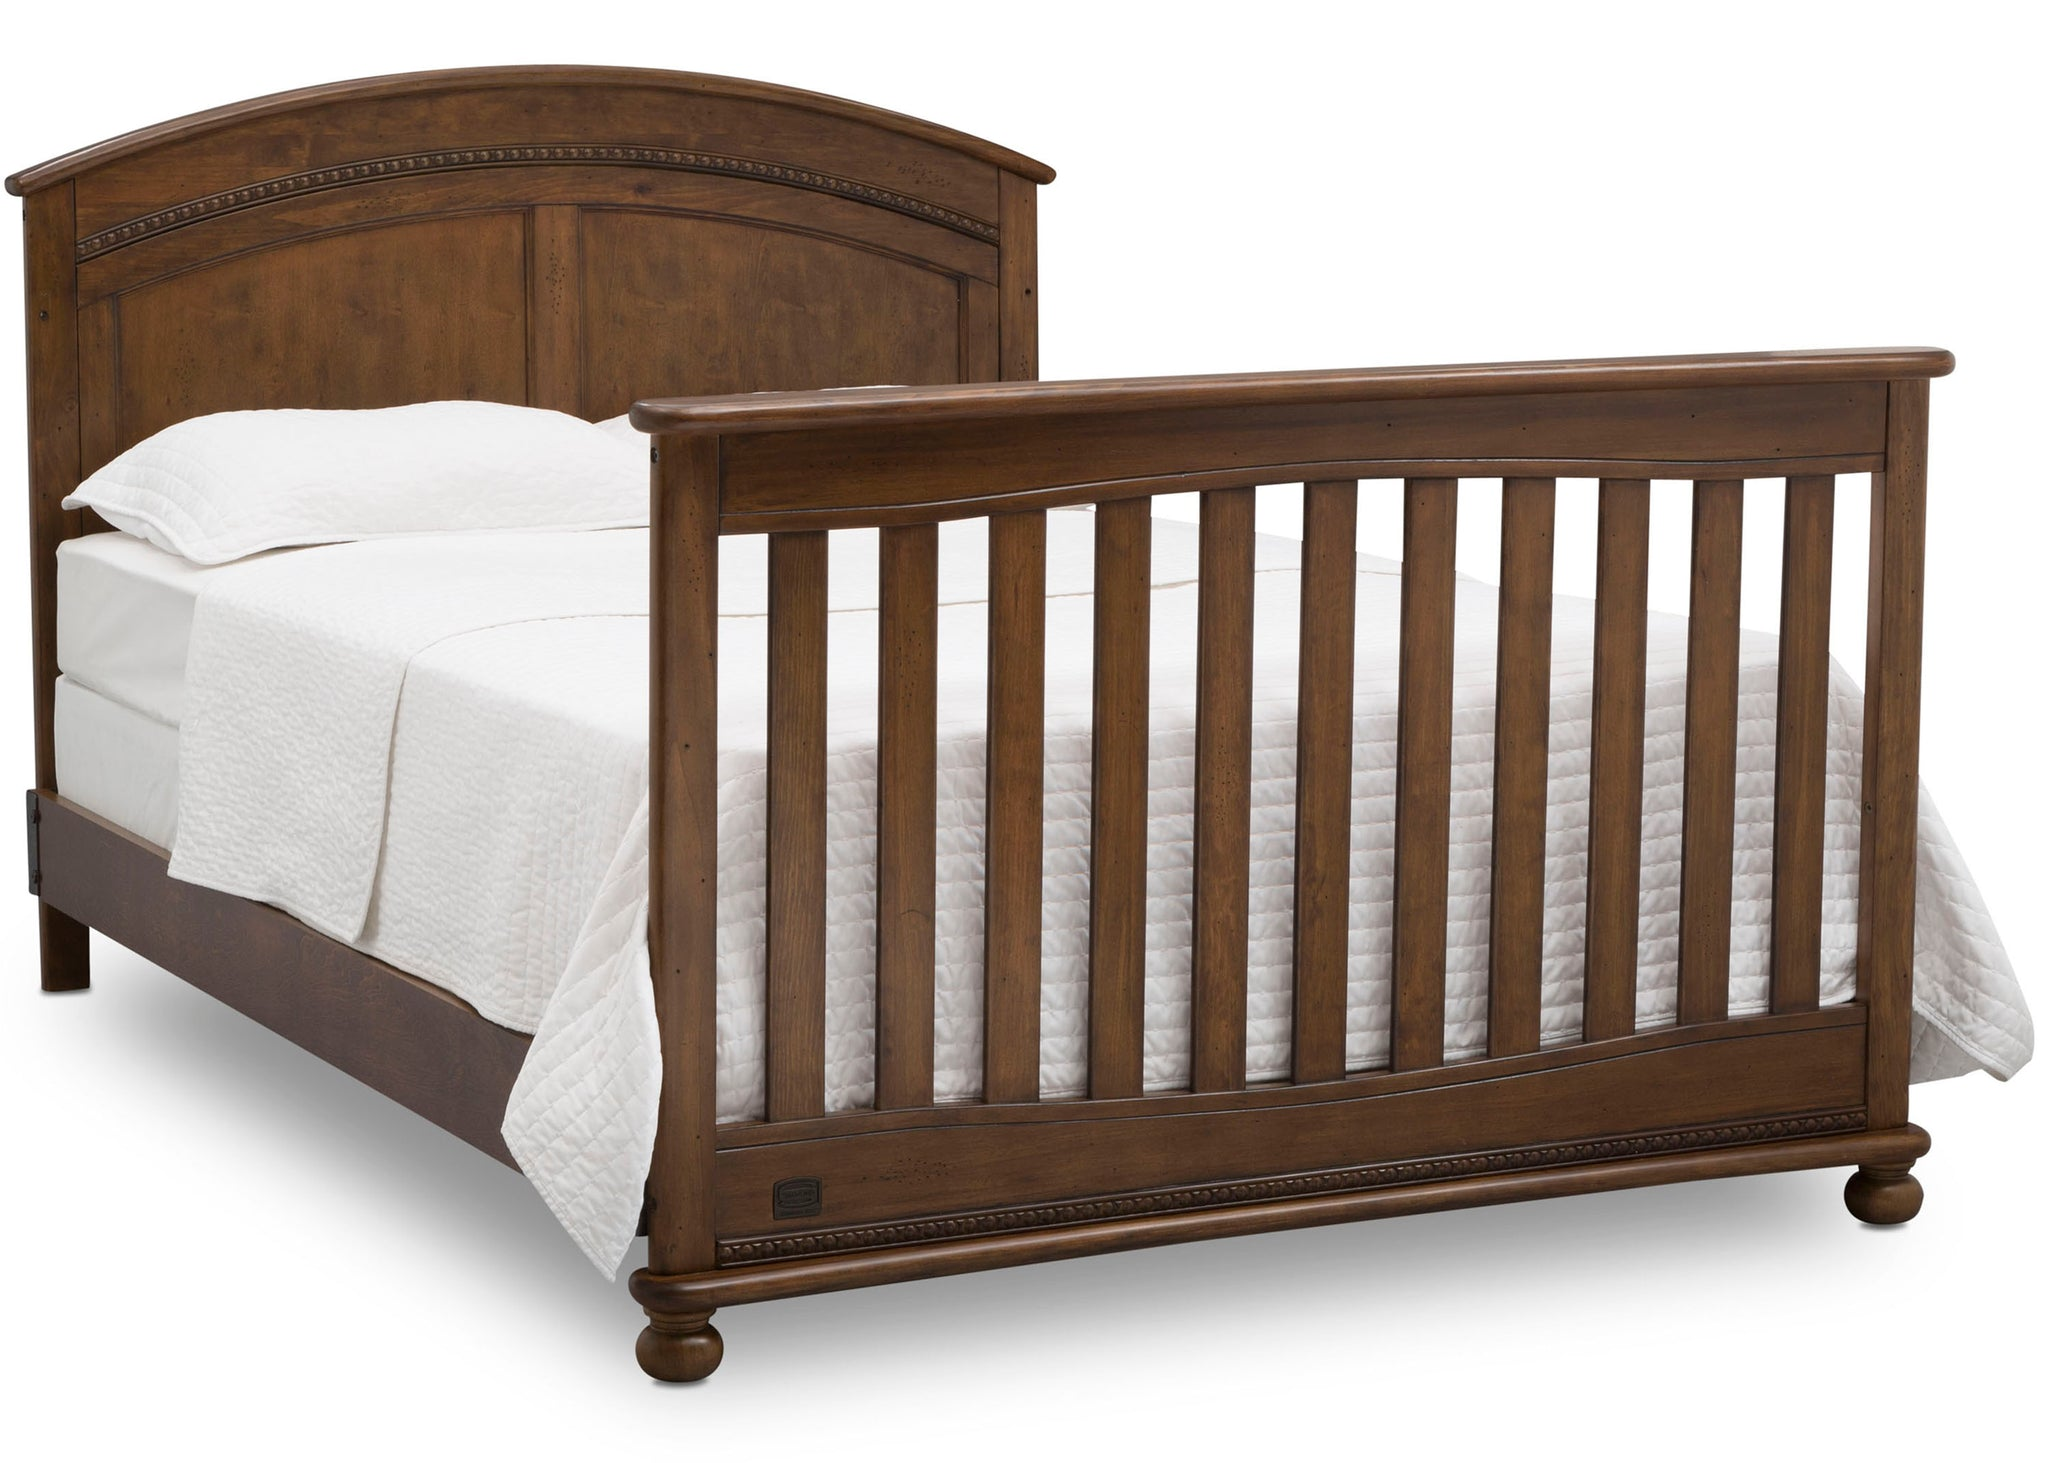 Simmons Kids Antique Chestnut (2100) Ainsworth 4-in-1 Convertible Crib (W337250), Full Bed Conversion, c6c